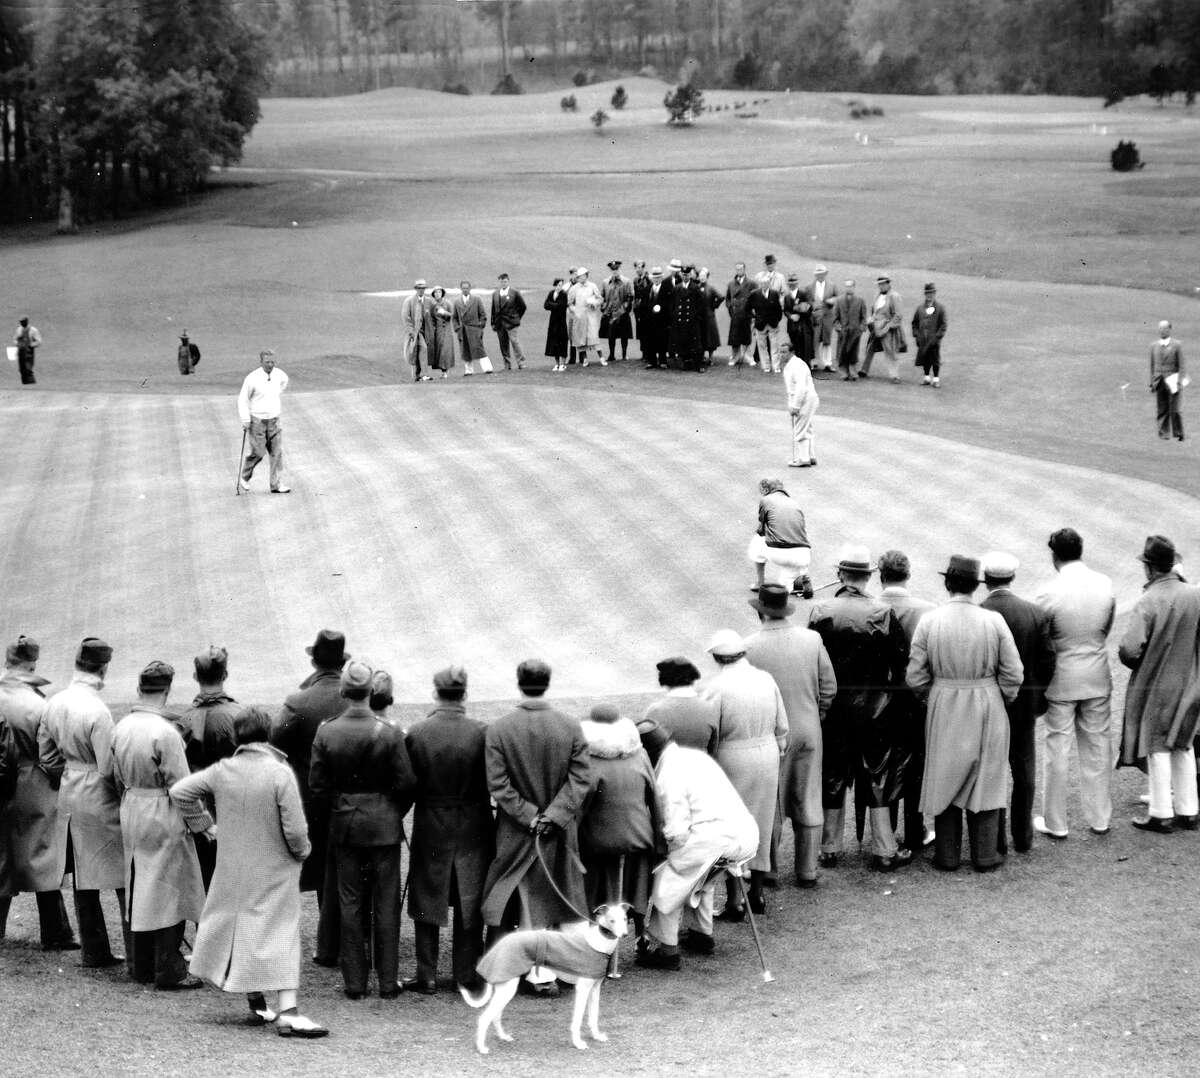 >> Take a look at how golf evolved from its beginnings to today across all of Fairfield County. Visit Fairfiled Museum & History Center for more information.